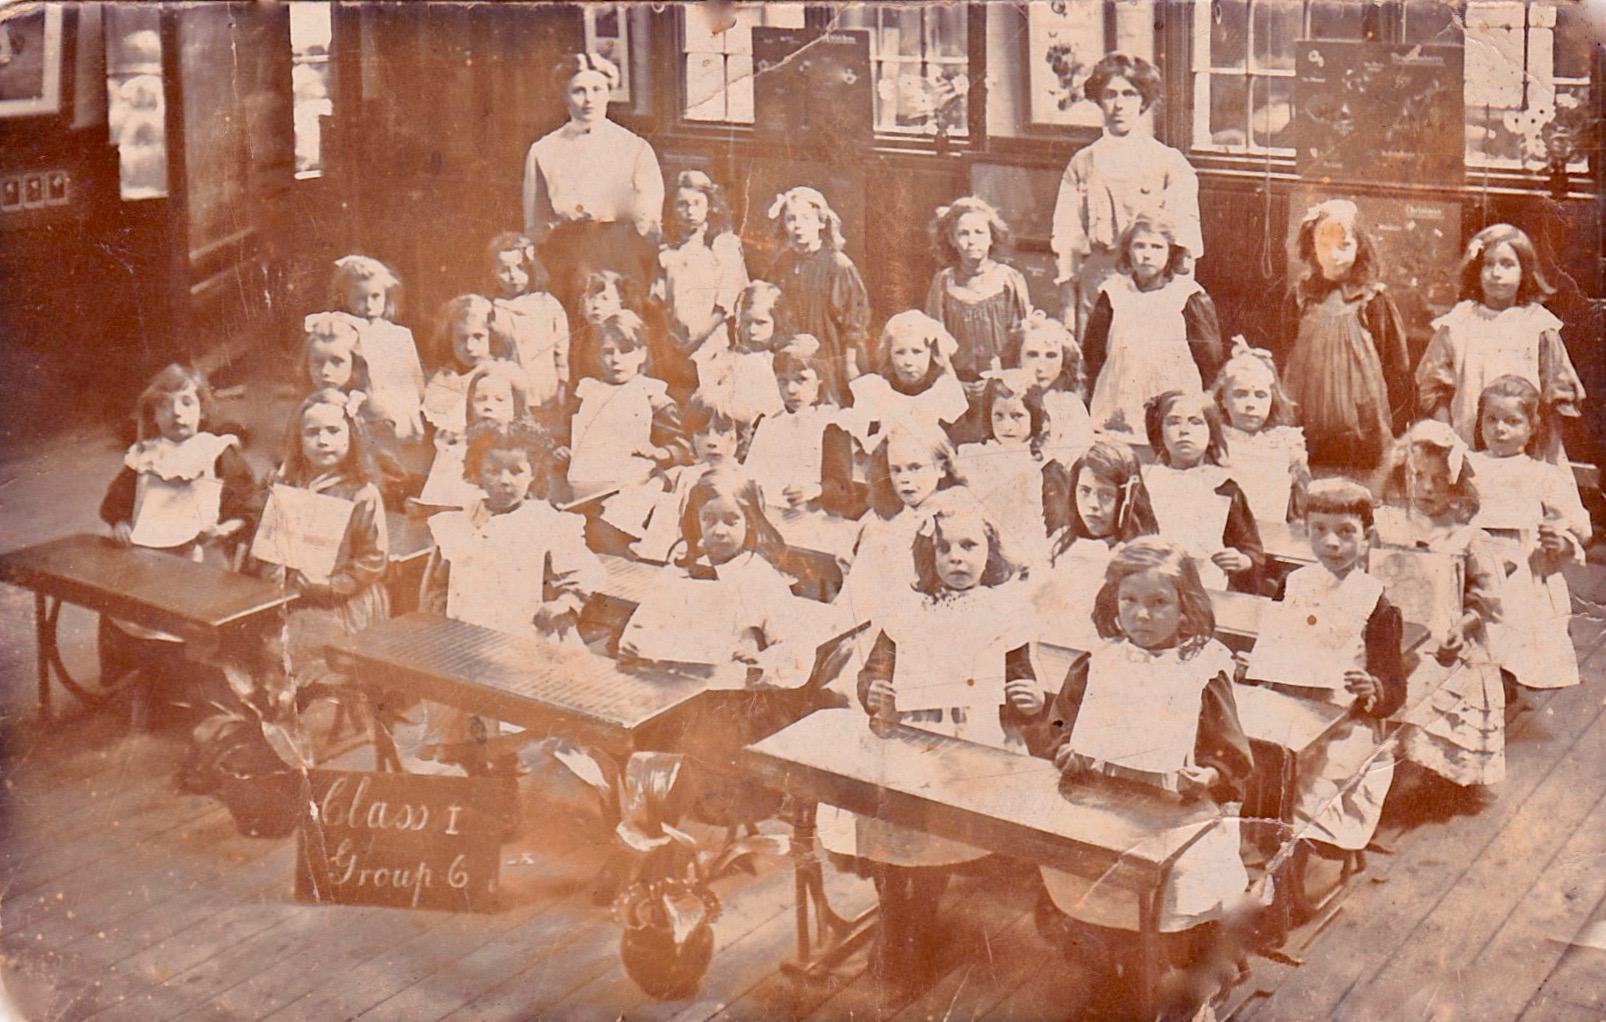 DUDLEY ROAD SCHOOL 1909/10.  Cheryl Smith photo